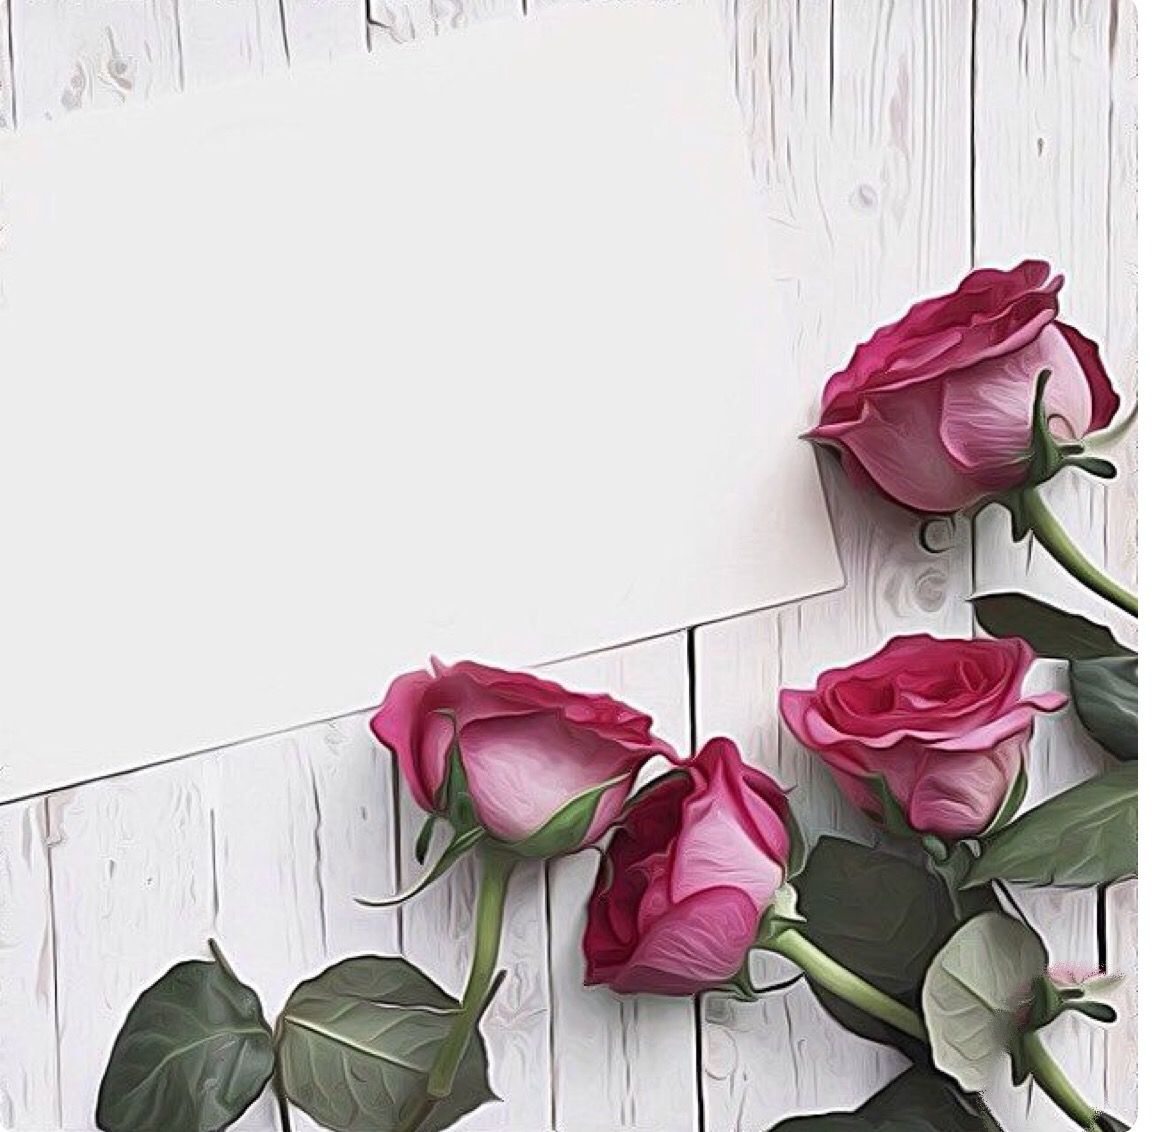 Pin By خليفه On خلفيات Flower Frame Flower Wallpaper Flower Background Wallpaper